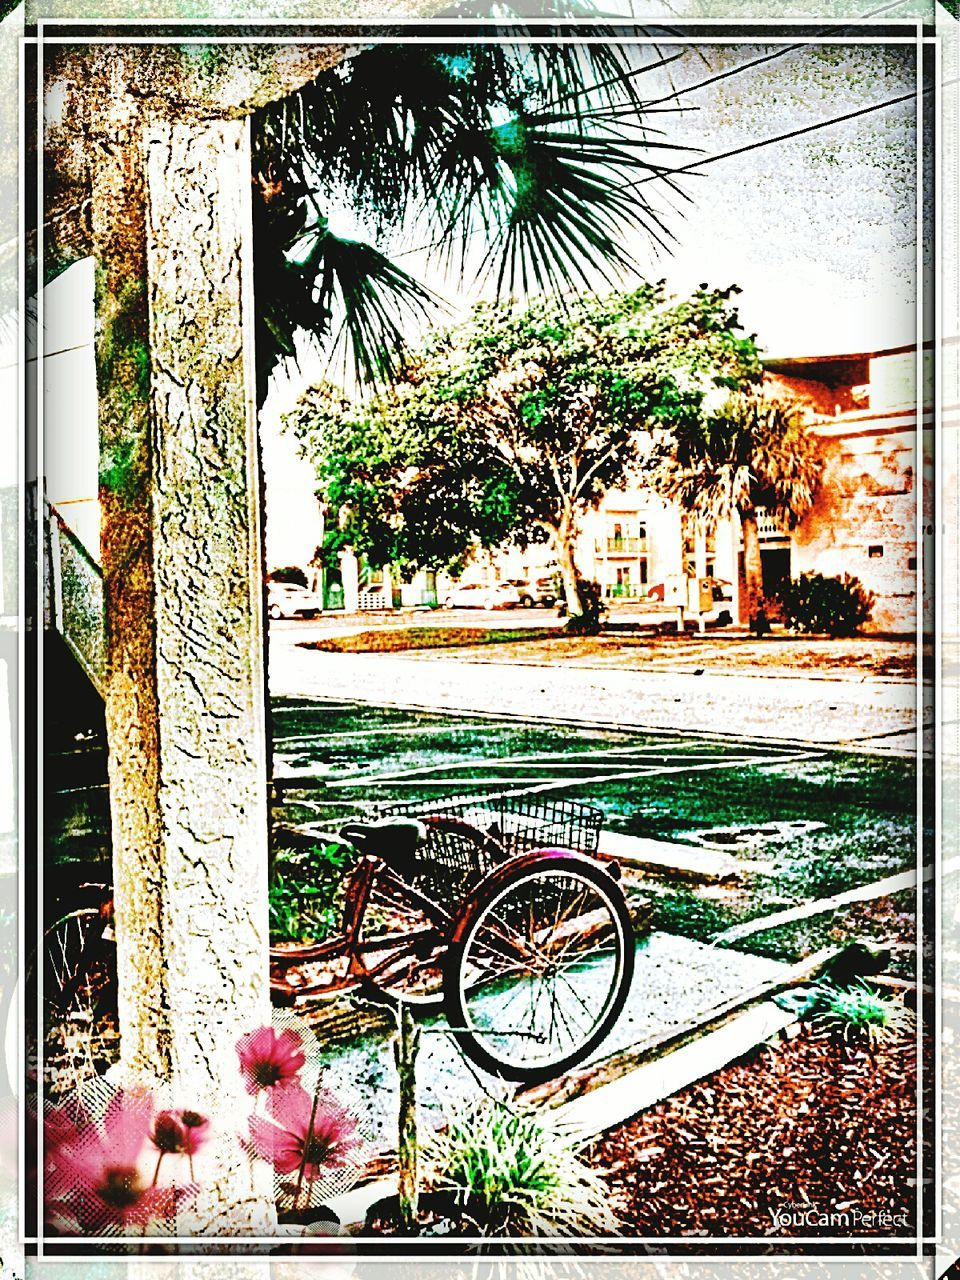 bicycle, tree, transportation, wheel, mode of transport, building exterior, day, outdoors, land vehicle, no people, built structure, growth, stationary, architecture, nature, palm tree, close-up